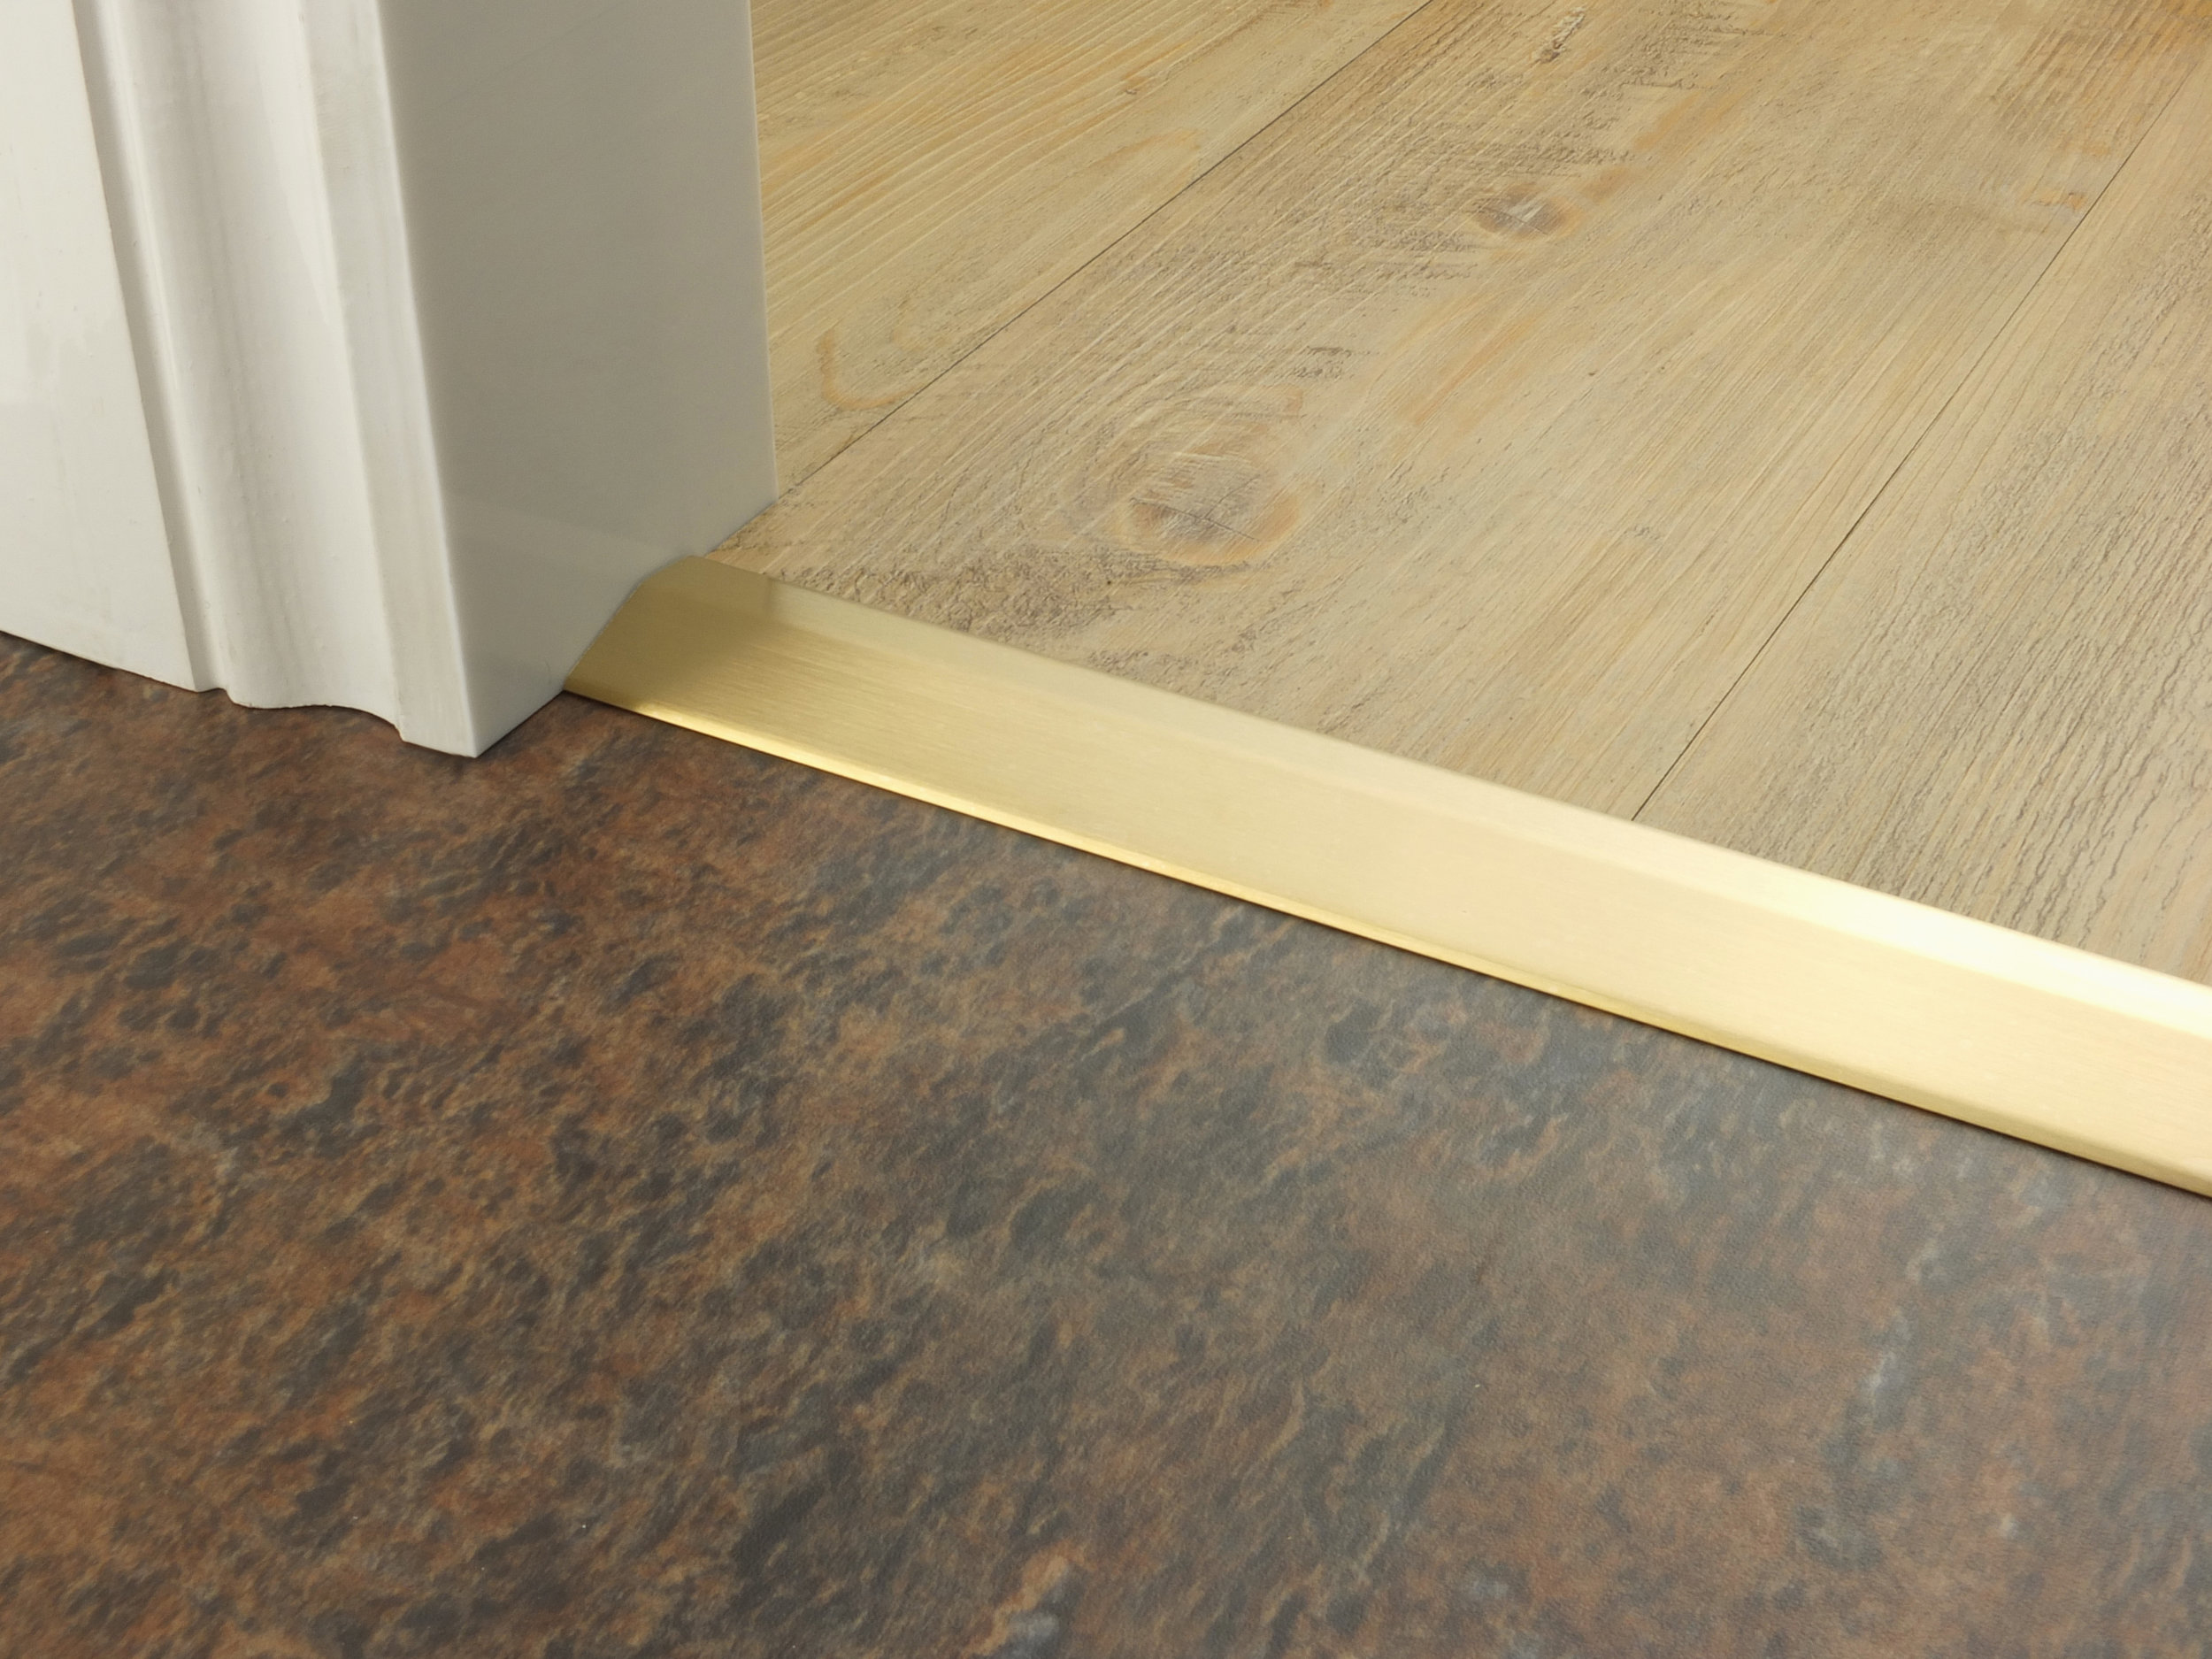 stairrods-doorbar-satin-brass-10mm-ramp.jpg